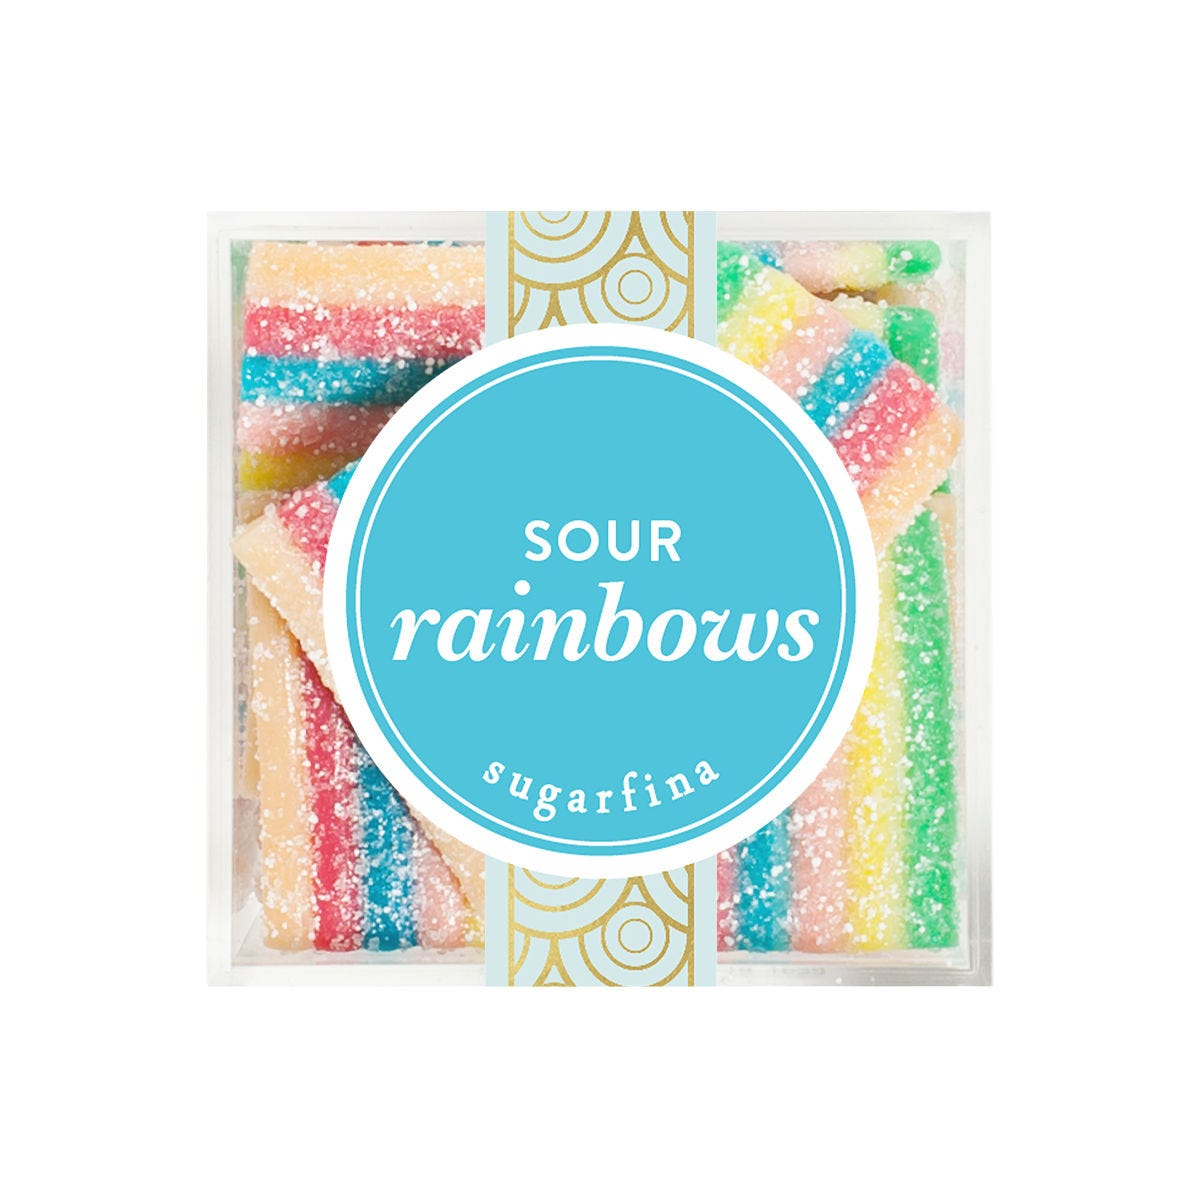 Sour Rainbows